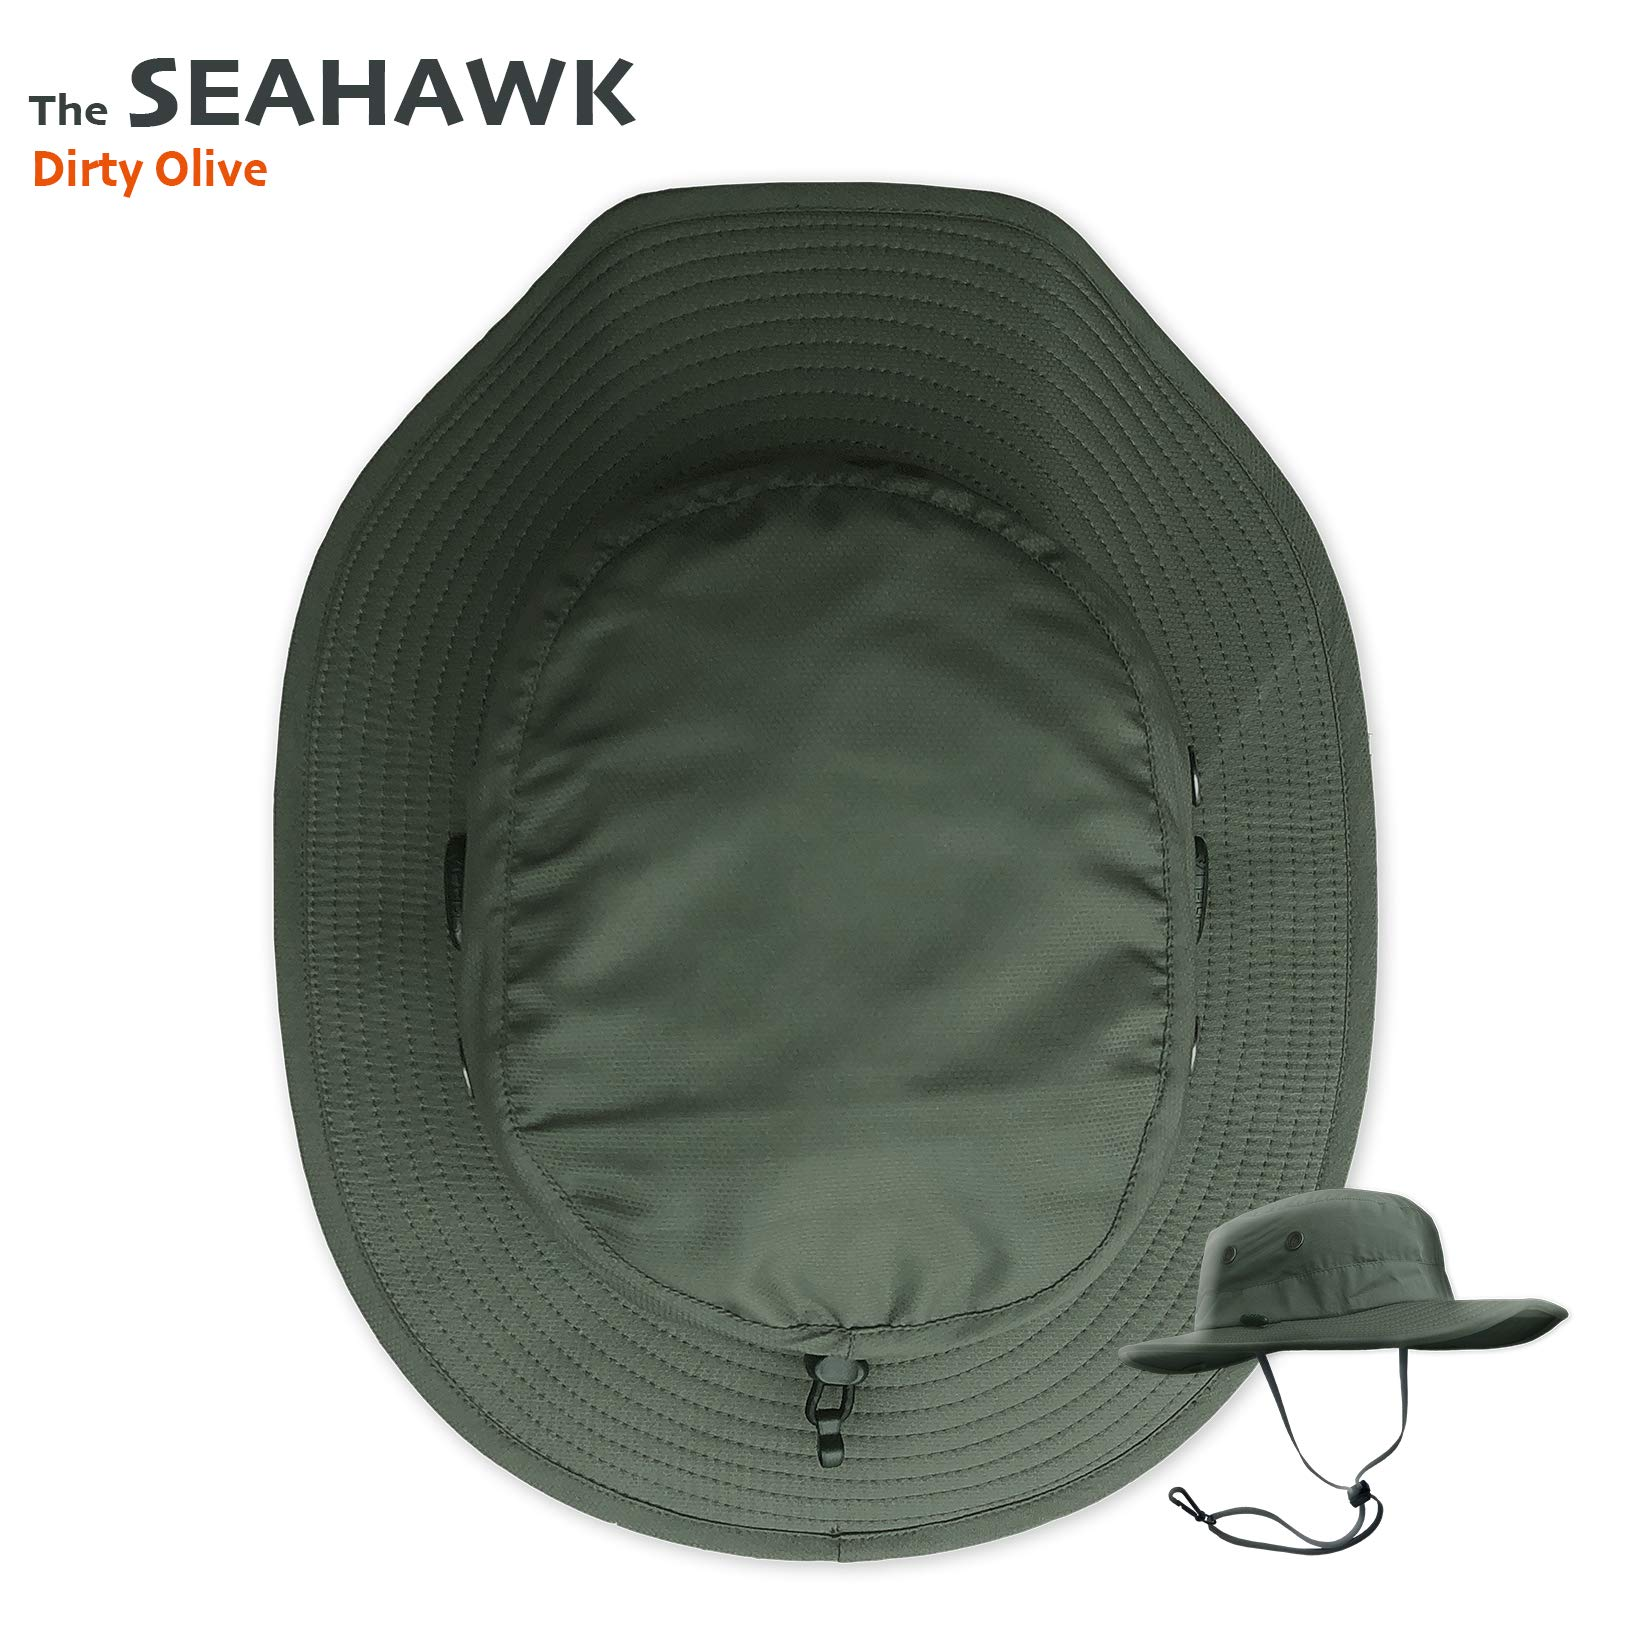 Seahawk (S/M, Dirty Olive) by Shelta (Image #2)